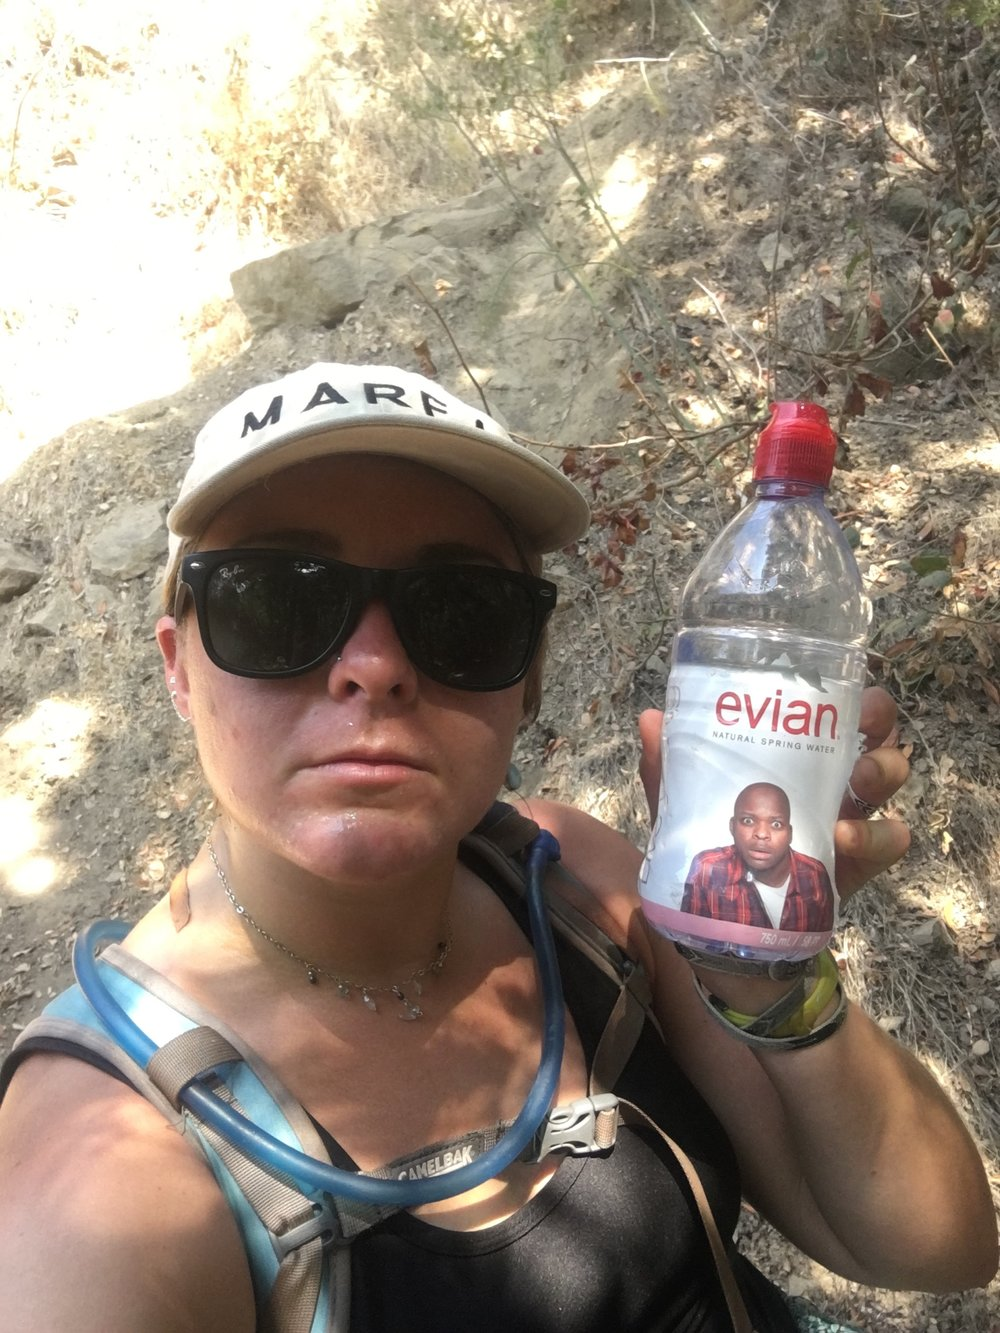 The guy on the Evian bottle is equally appalled at the misuse of plastic water bottles!